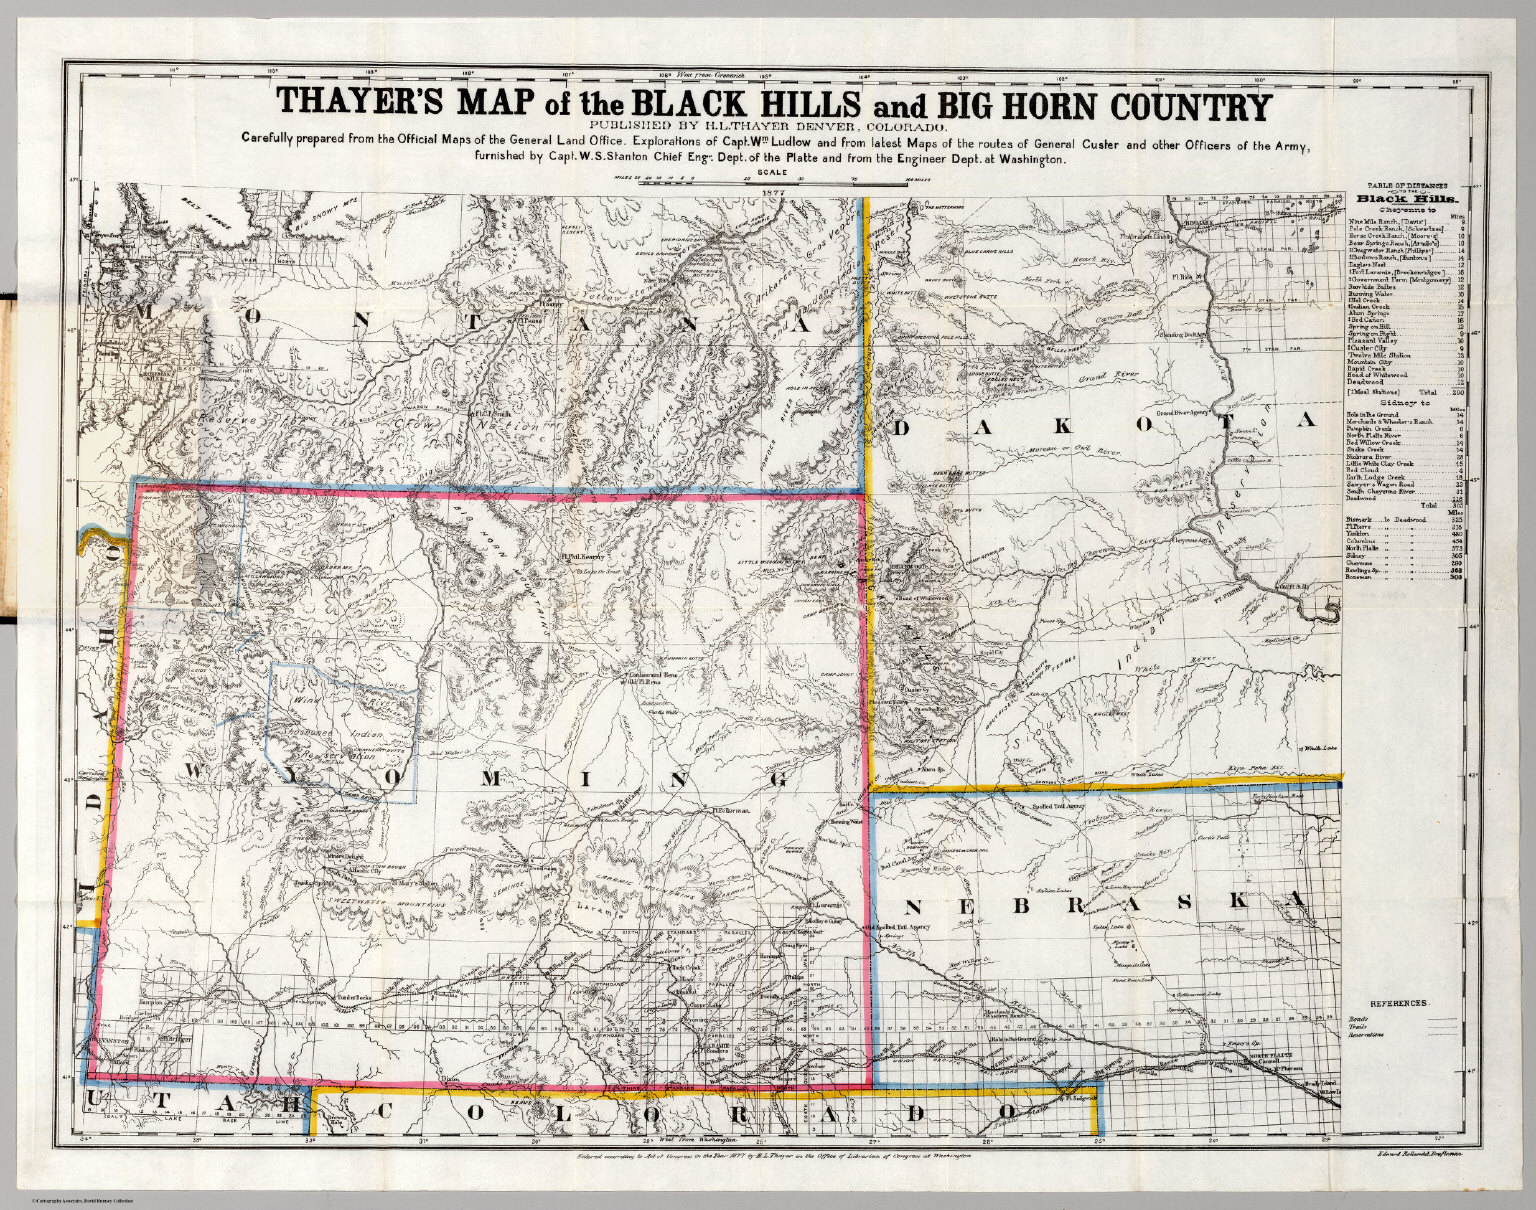 Map of the Black Hills  Big Horn Country  David Rumsey